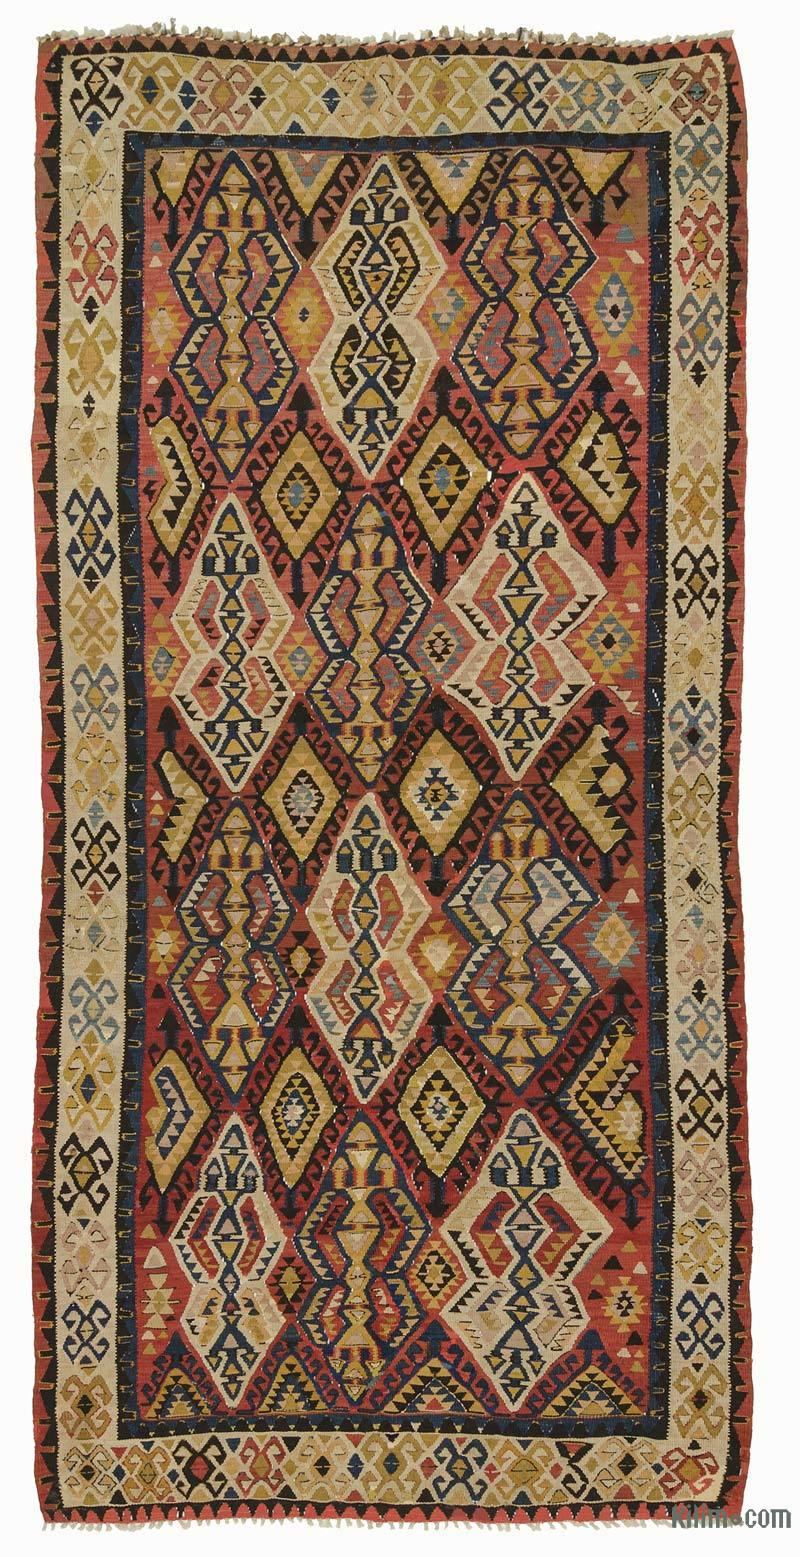 k0007939 multicolor antique avar kilim rug. Black Bedroom Furniture Sets. Home Design Ideas